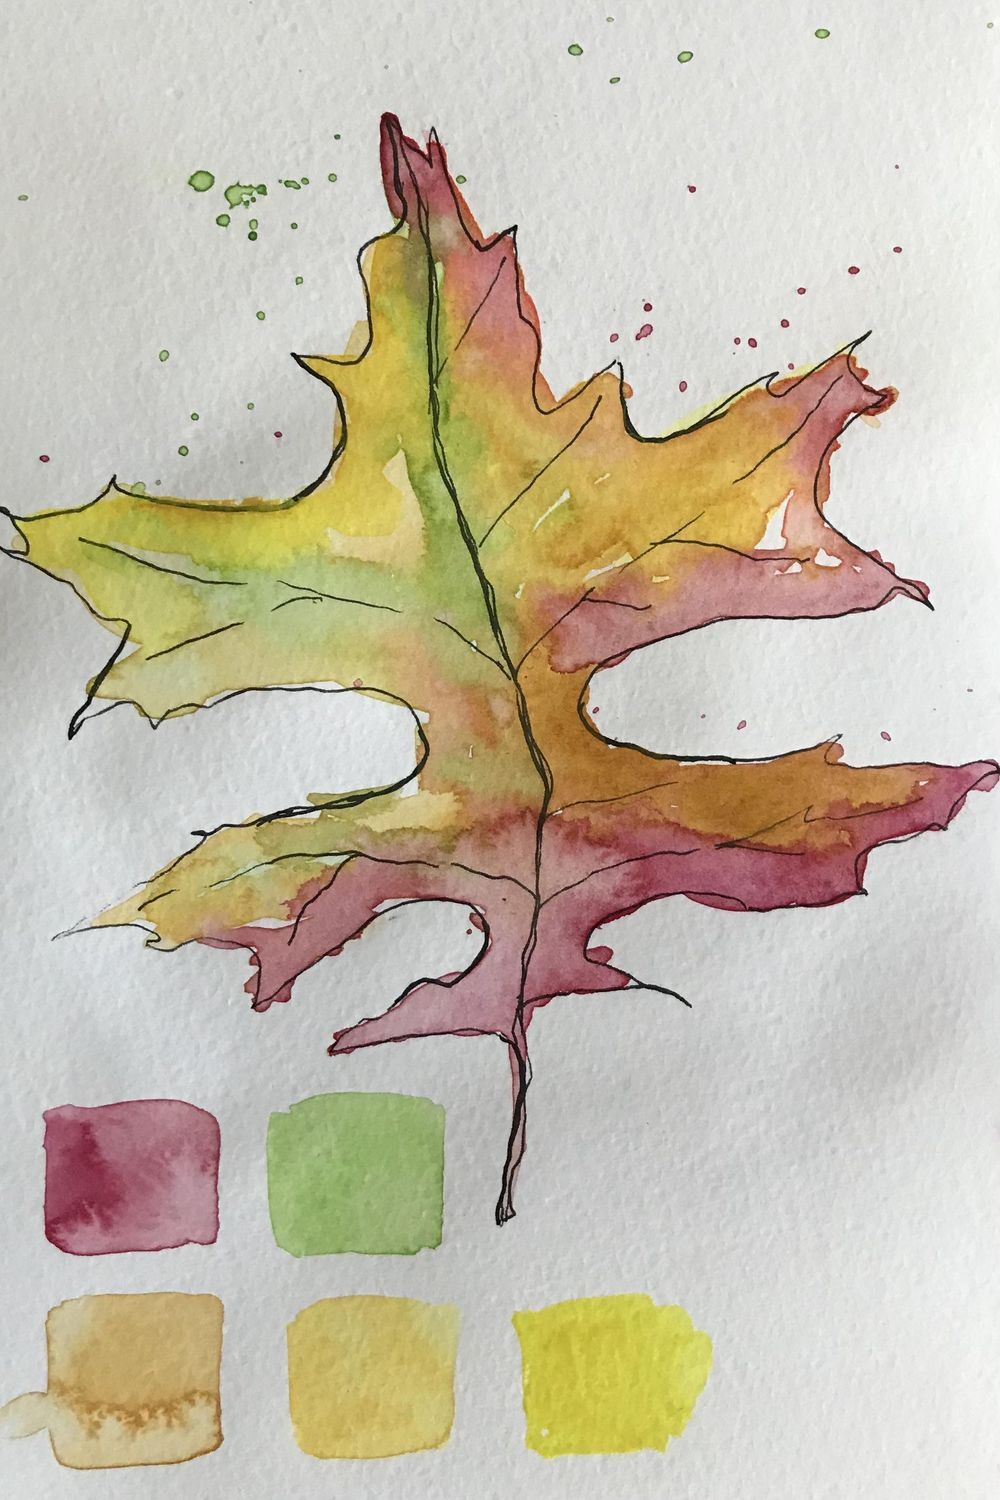 Loose flower and leaf - image 1 - student project